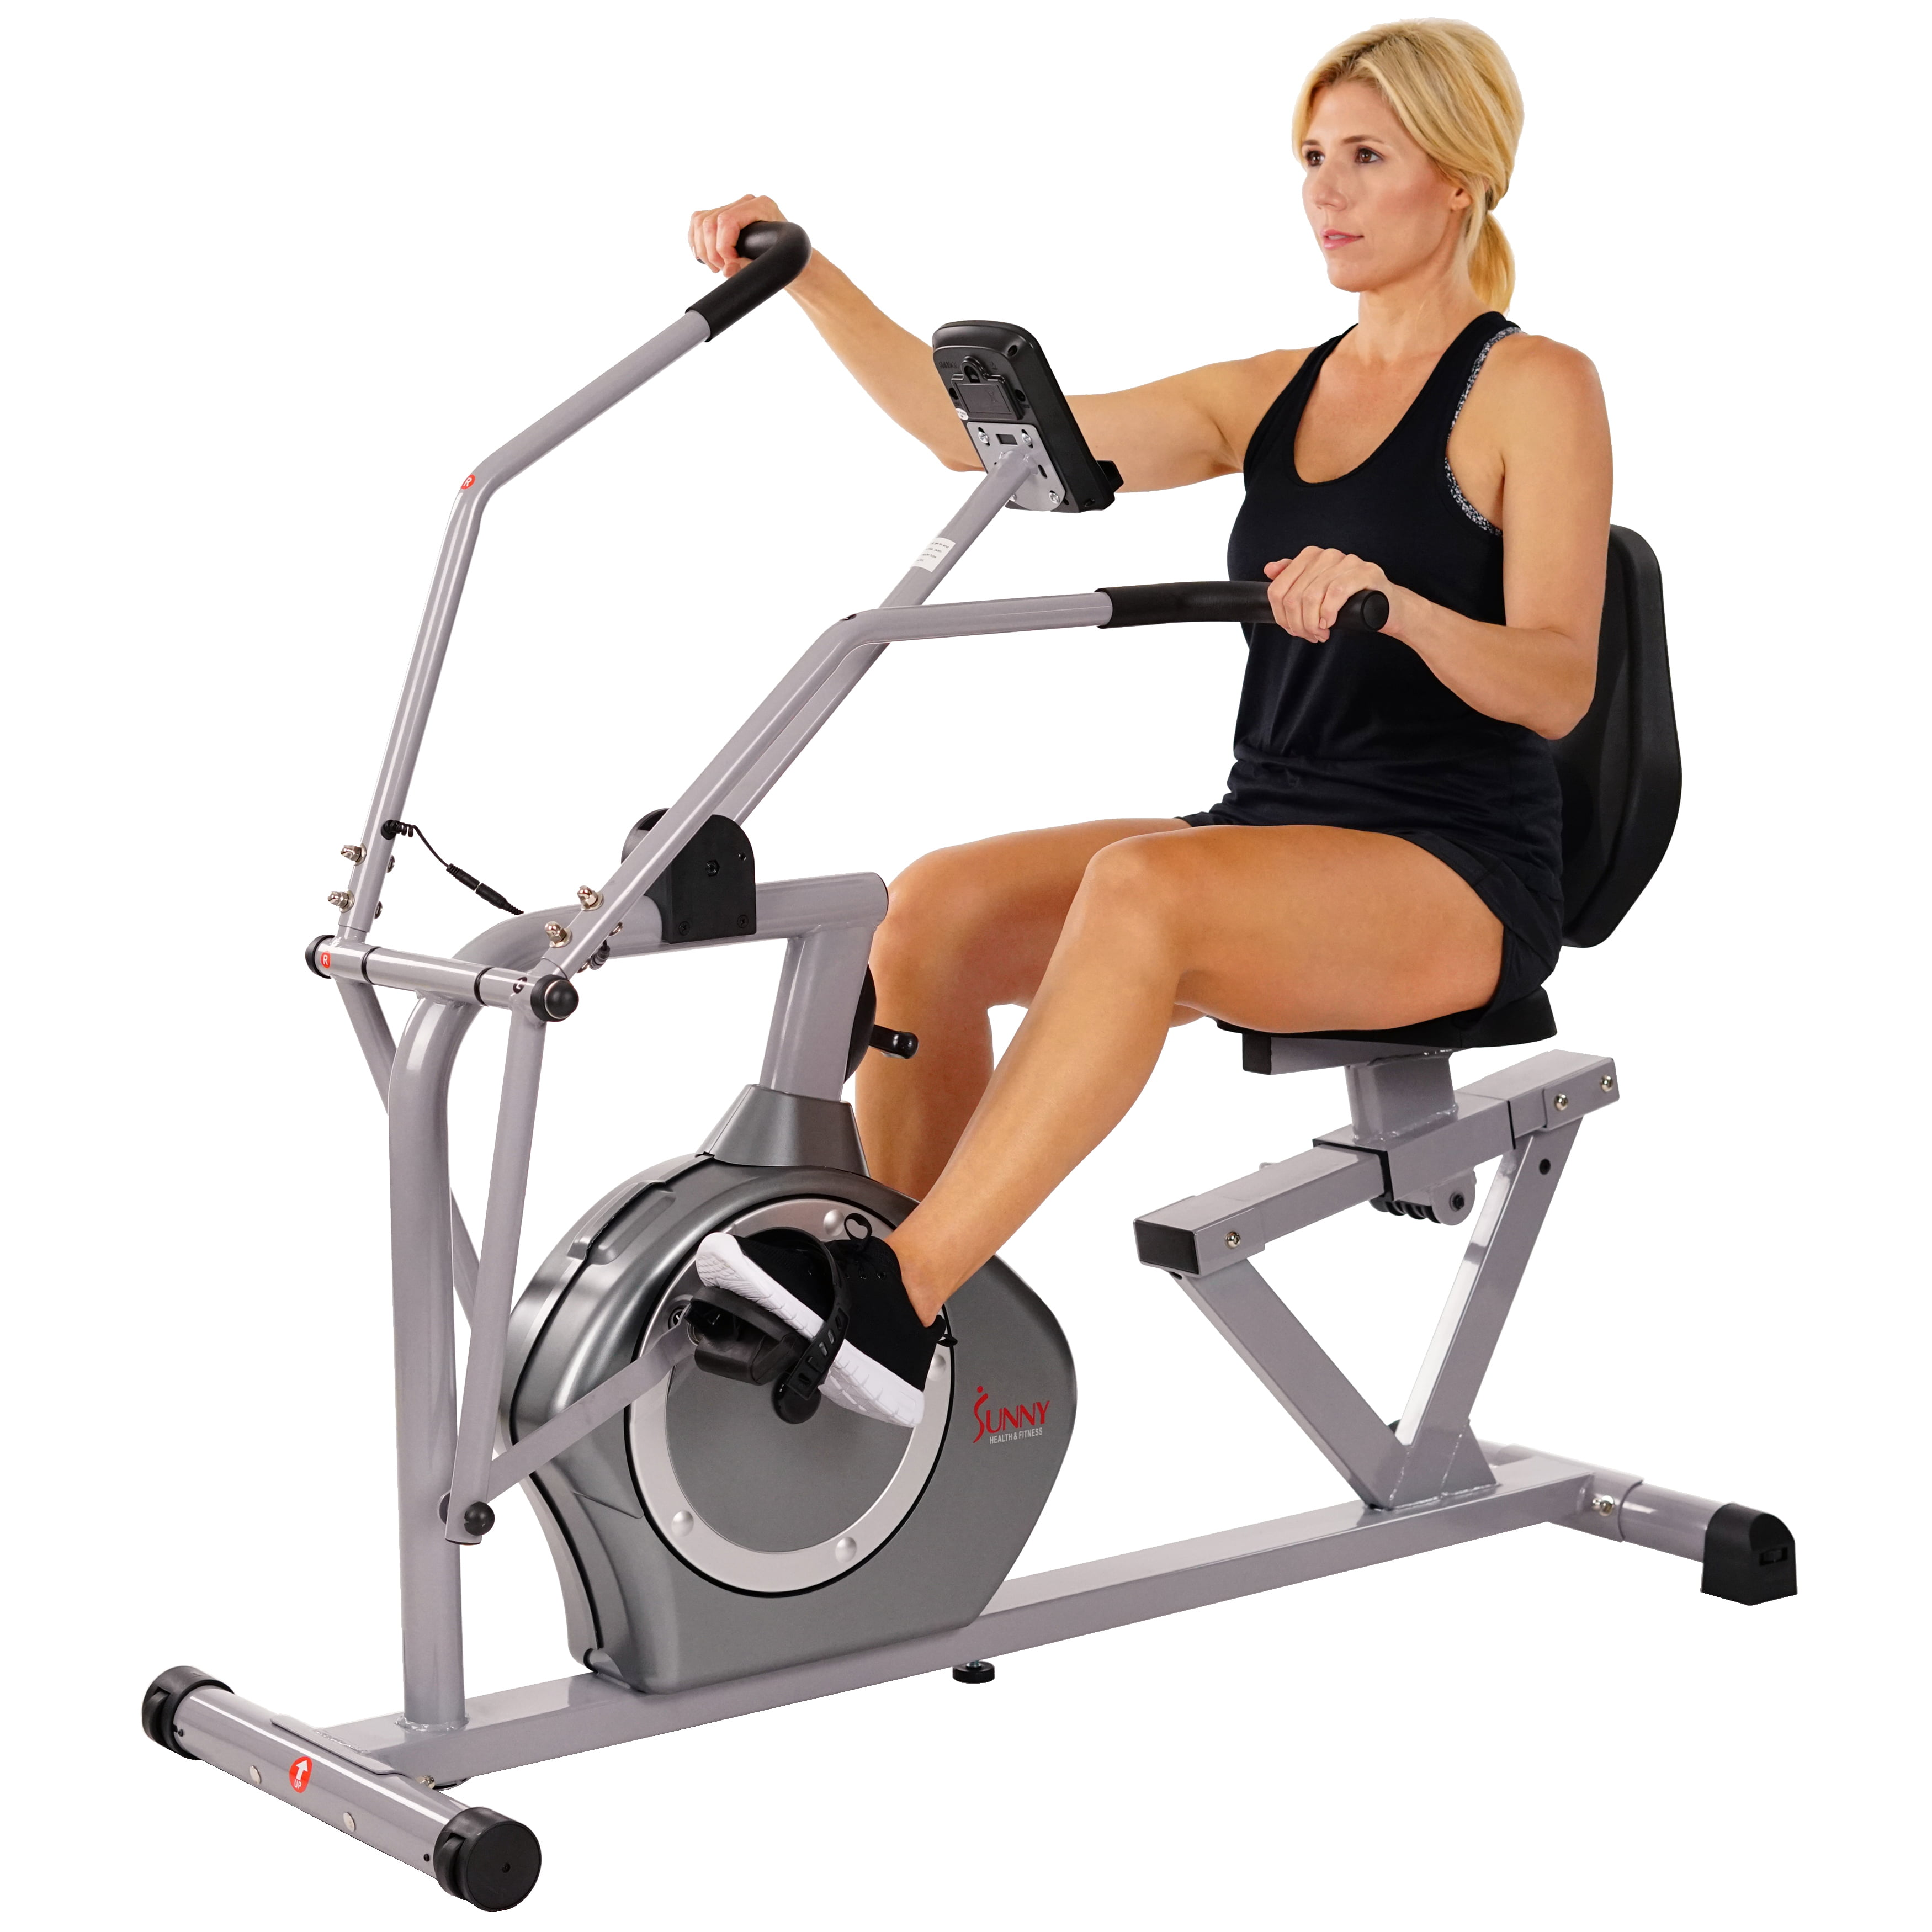 Sunny Health & Fitness Cross Training Magnetic Recumbent Bike SF-RB4708 by Sunny Health & Fitness